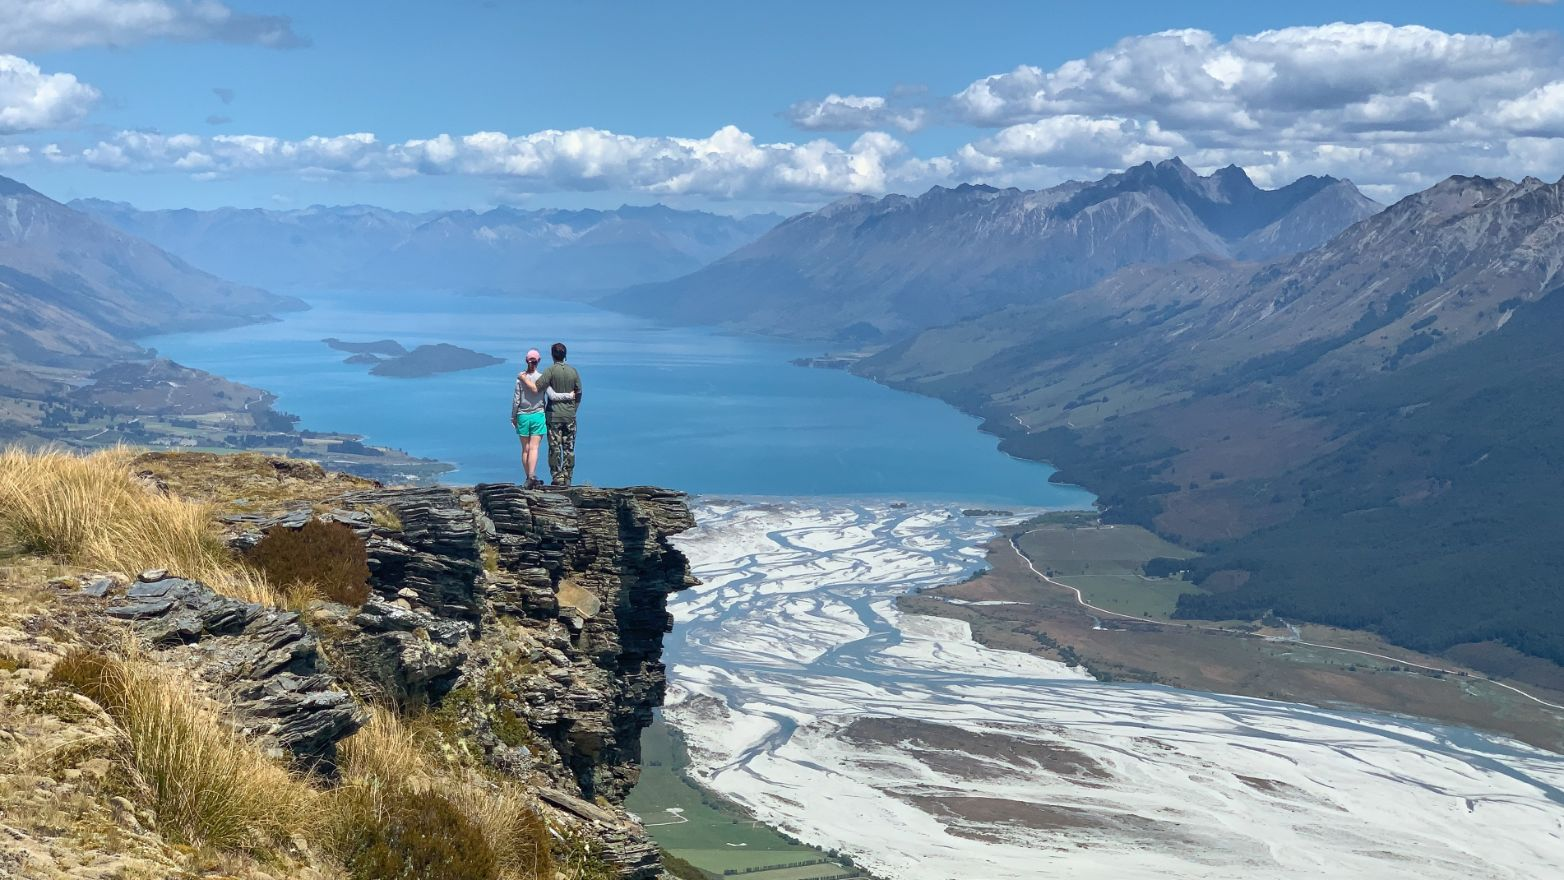 Looking out over the Dart River and Lake Wakatipu in Glenorchy